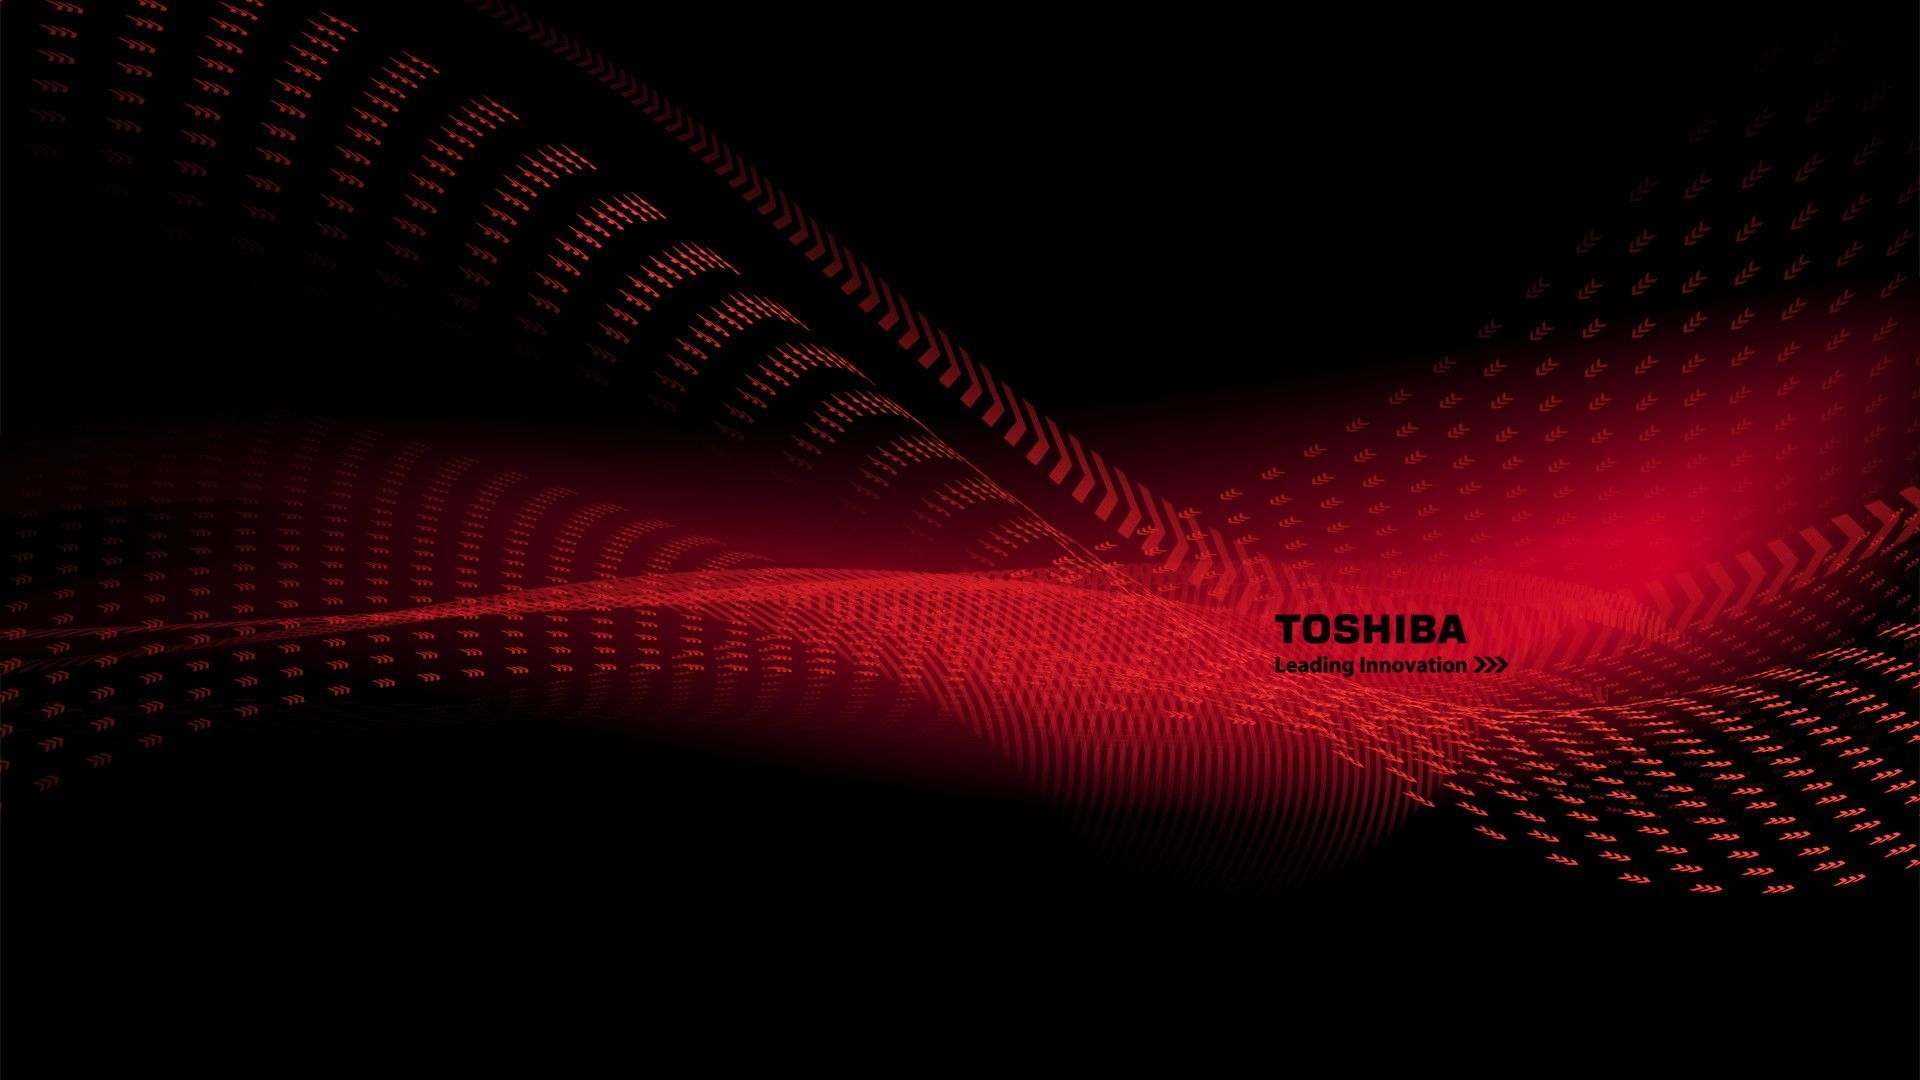 Toshiba Backgrounds Pictures - Wallpaper Cave